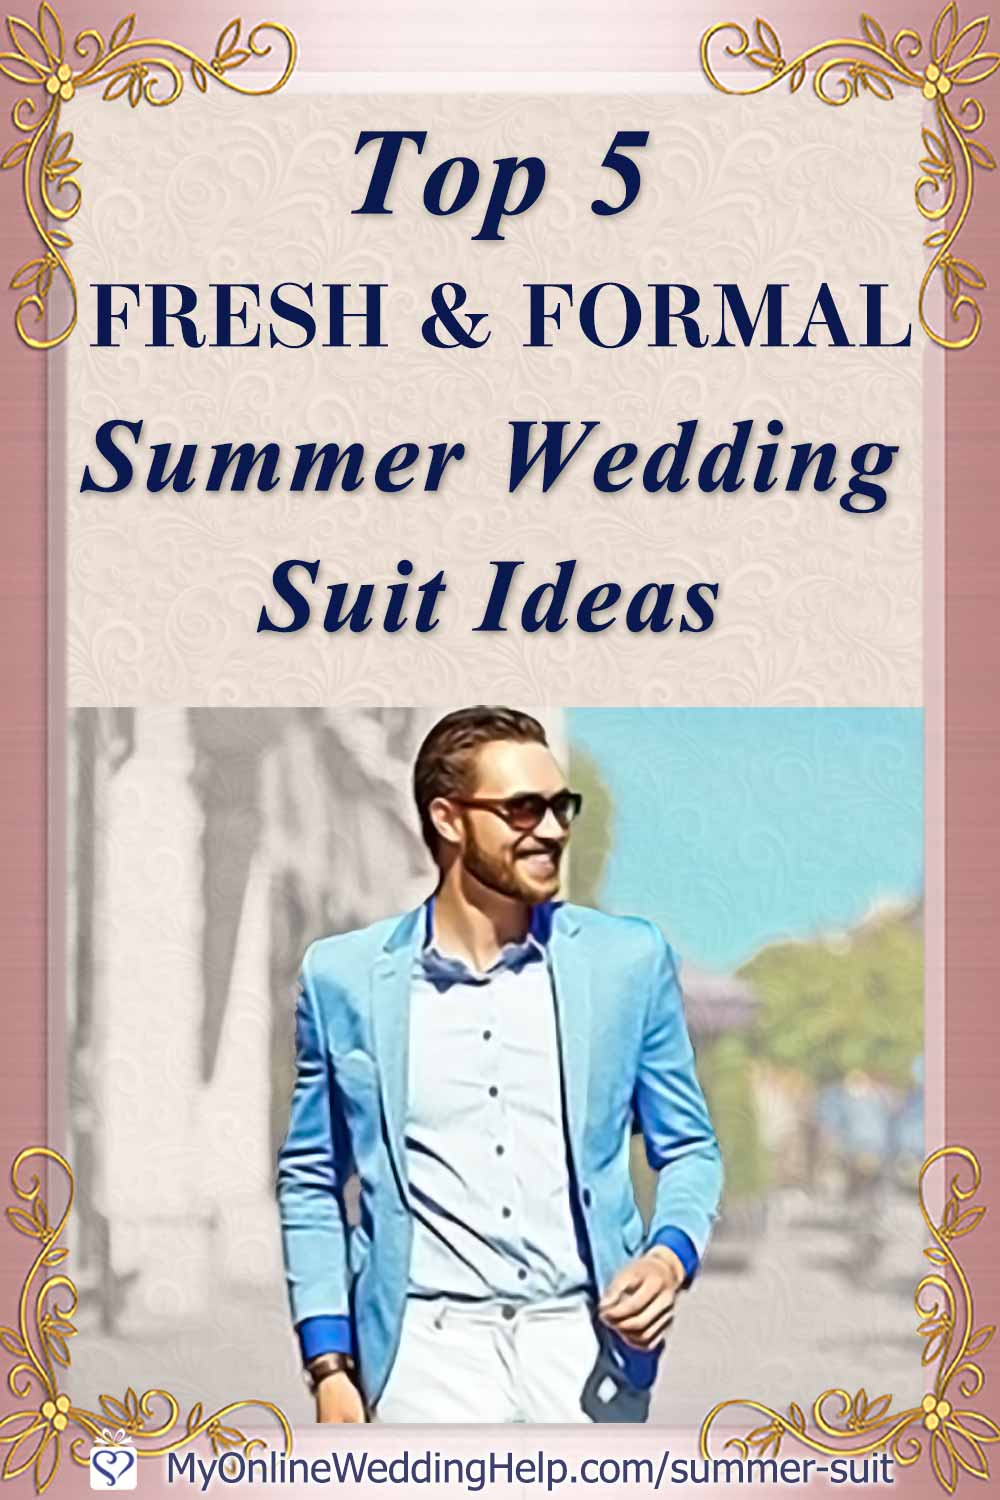 Ideas for putting together a classy men's summer wedding suit that's both formal and comfortable. These five ideas will have your guy outfitted in attire that's both appropriate and fresh. Whether he's a guest, groomsman, or groom. First, suit construction is key. Next, ... read them all on the My Online Wedding Help Blog. #WeddingOutfits #SummerWedding #Groomswear #Groomsmen #SummerSuit #FormalAttire